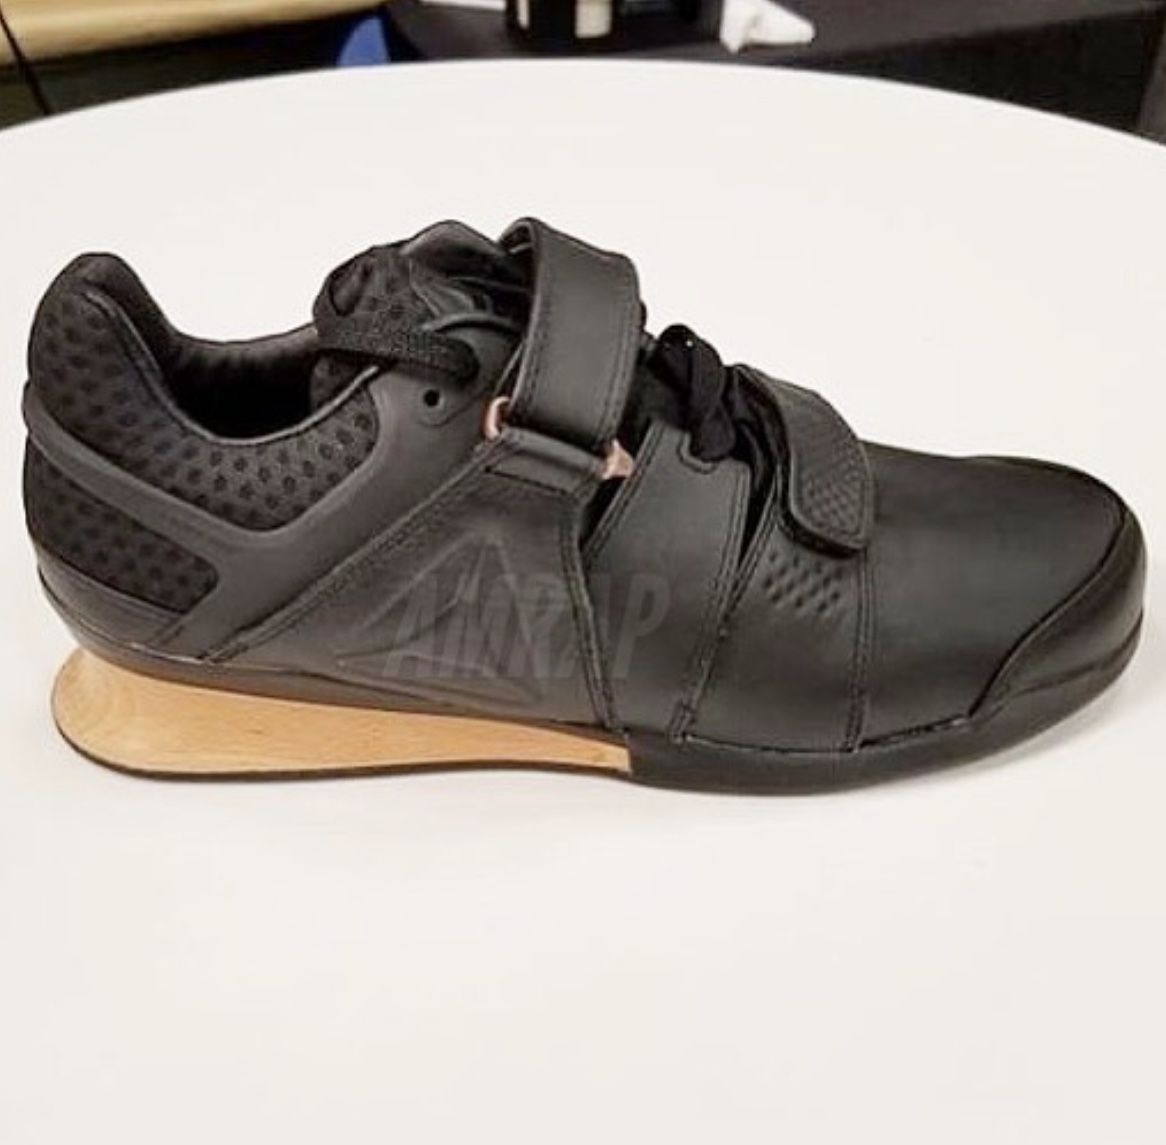 29ccba676b4f05 Reebok Is Coming Out With a Wood Heel Legacy Lifter. https   barbend